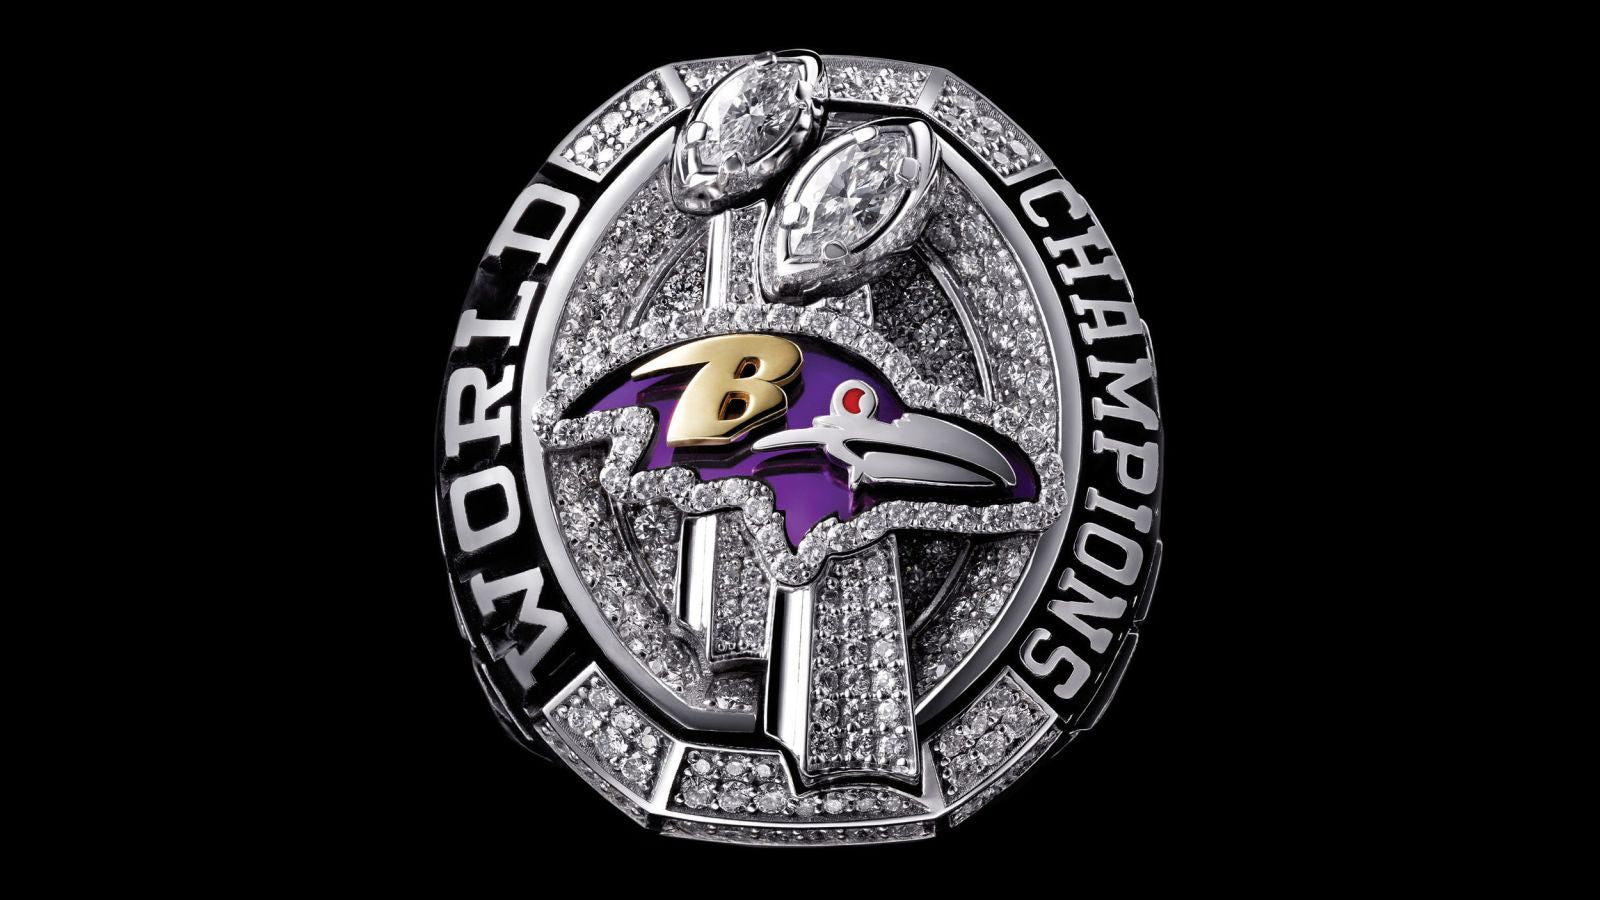 2012 Baltimore Ravens Super Bowl Championship Ring